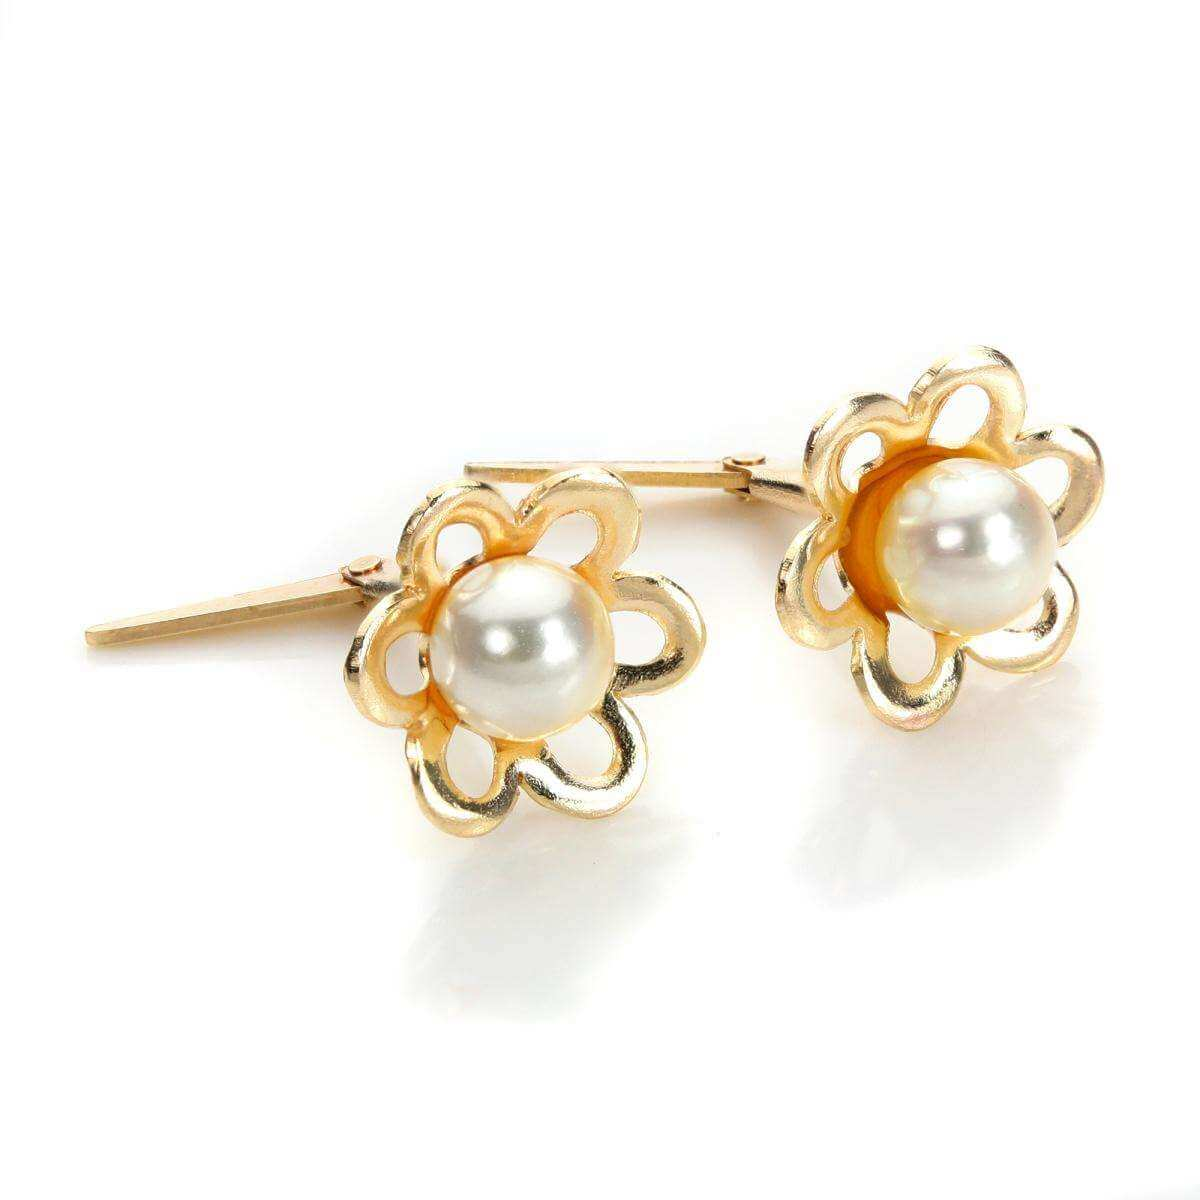 Andralok 9ct Yellow Gold Pearl Flower 4mm Stud Earrings